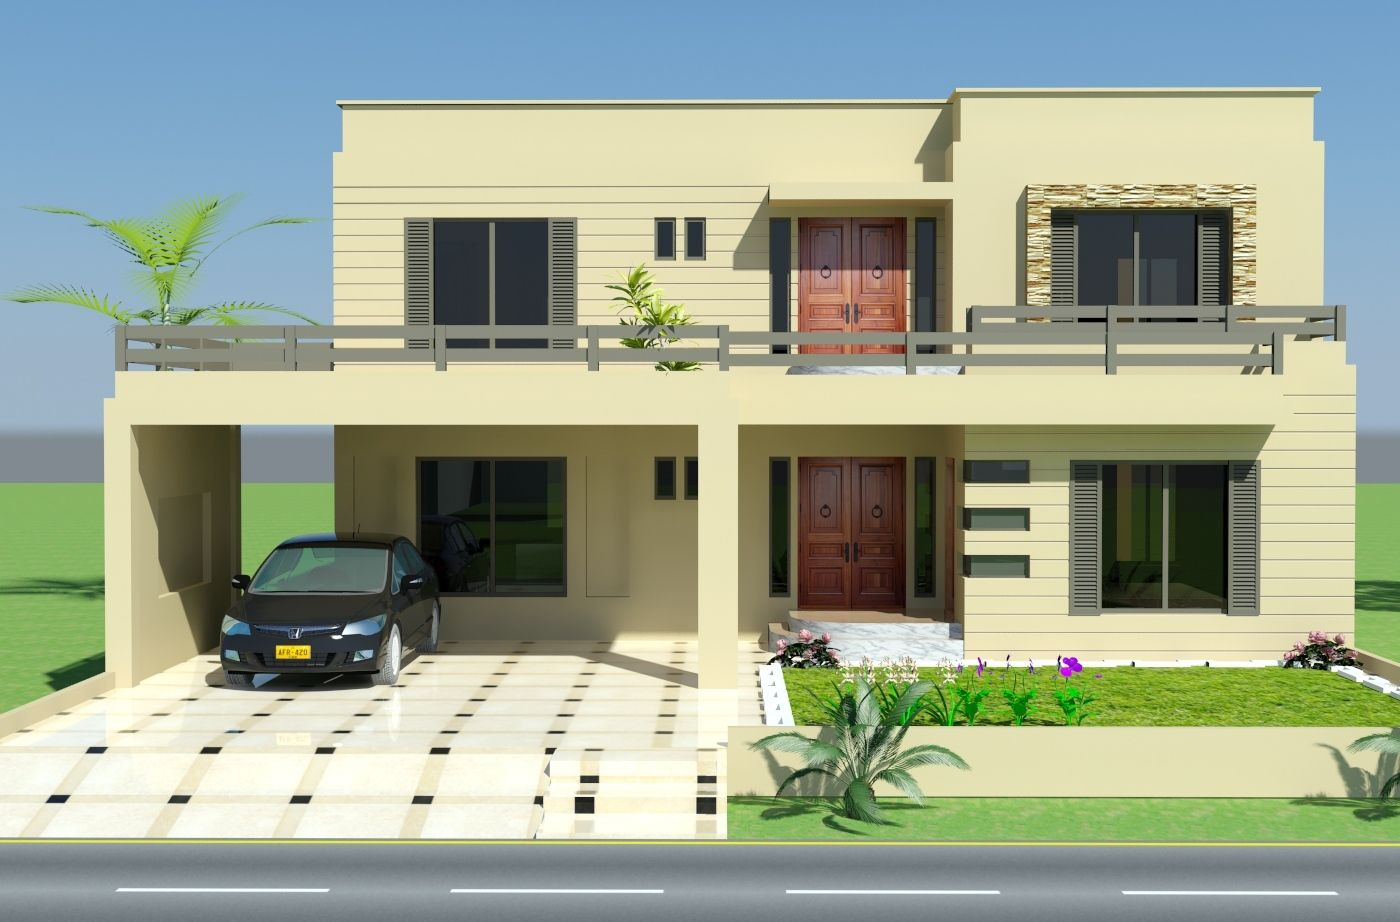 Exterior house design front elevation mi futura casa pinterest house elevation modern Home design and elevation